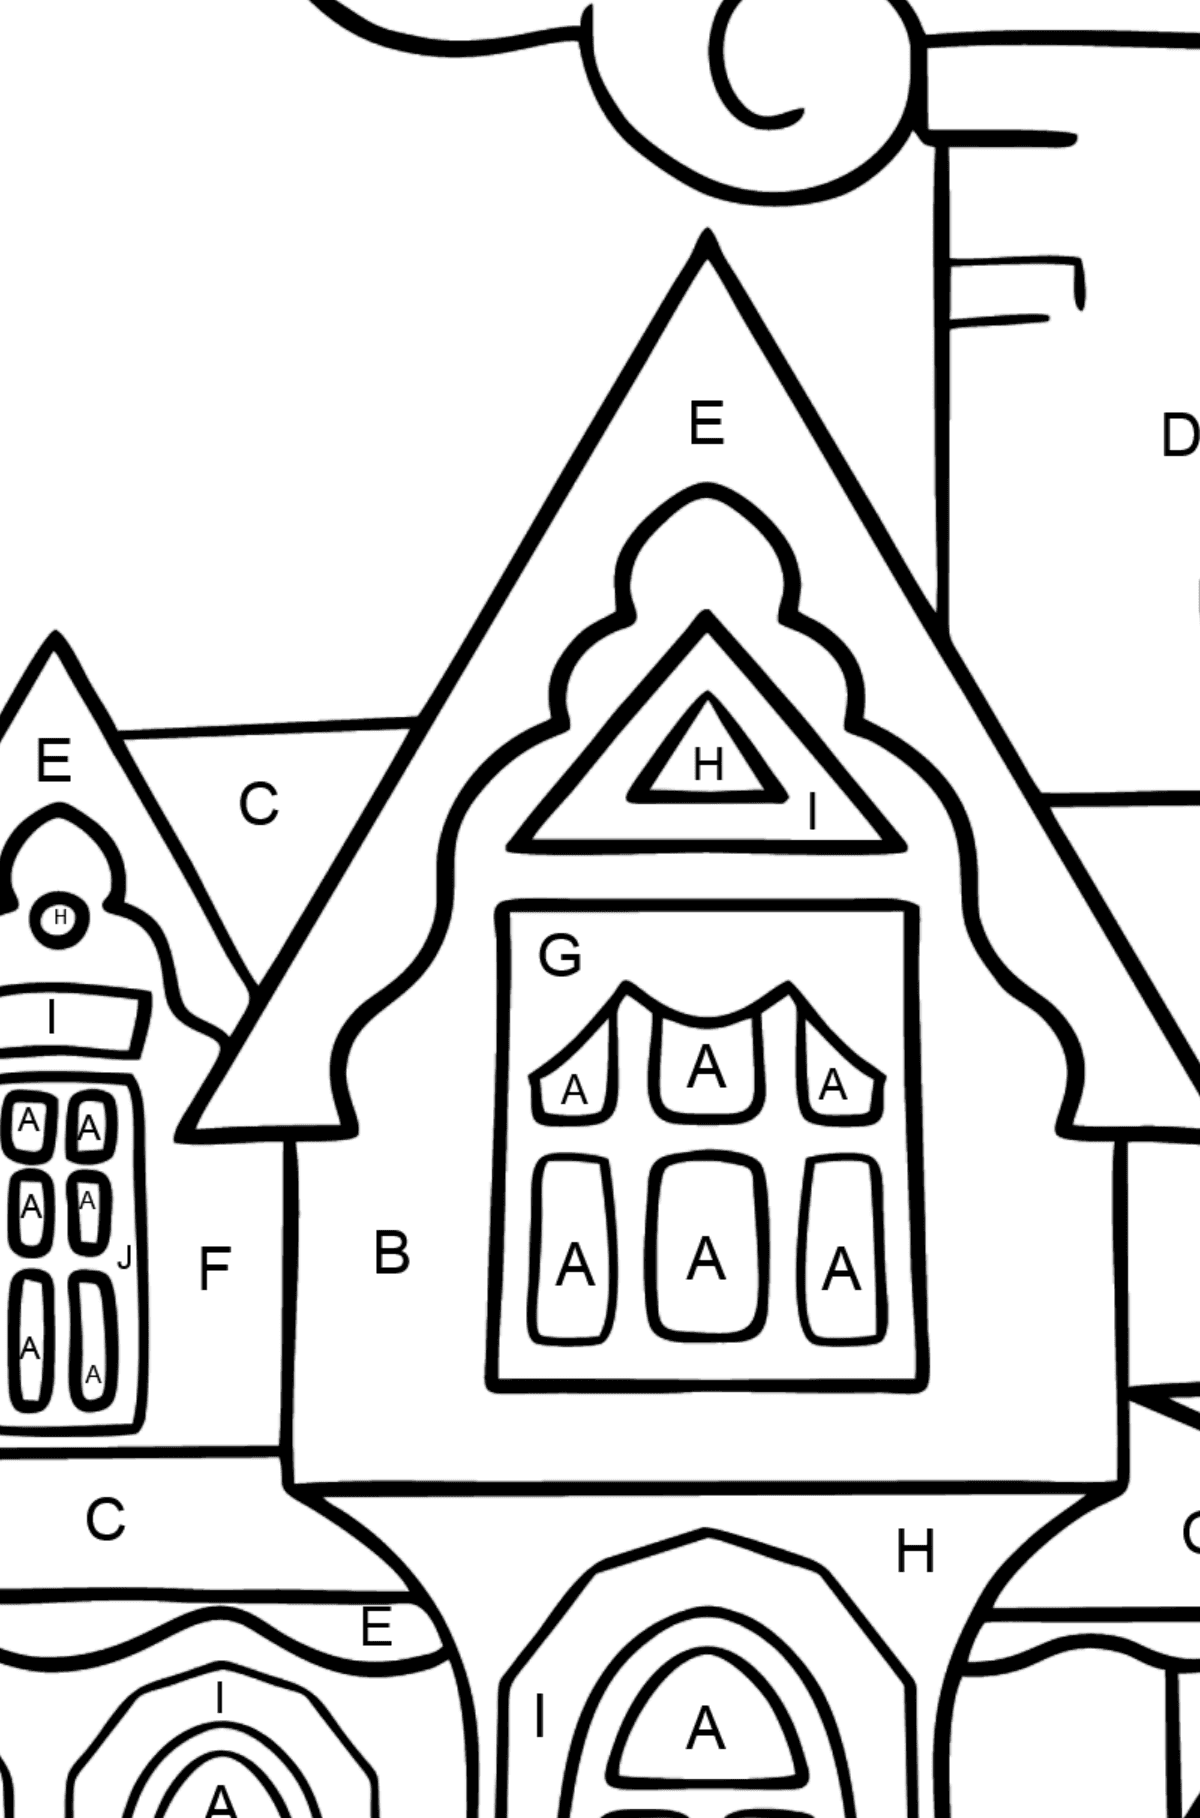 Complex Coloring Page - A Miraculous House - Coloring by Letters for Kids